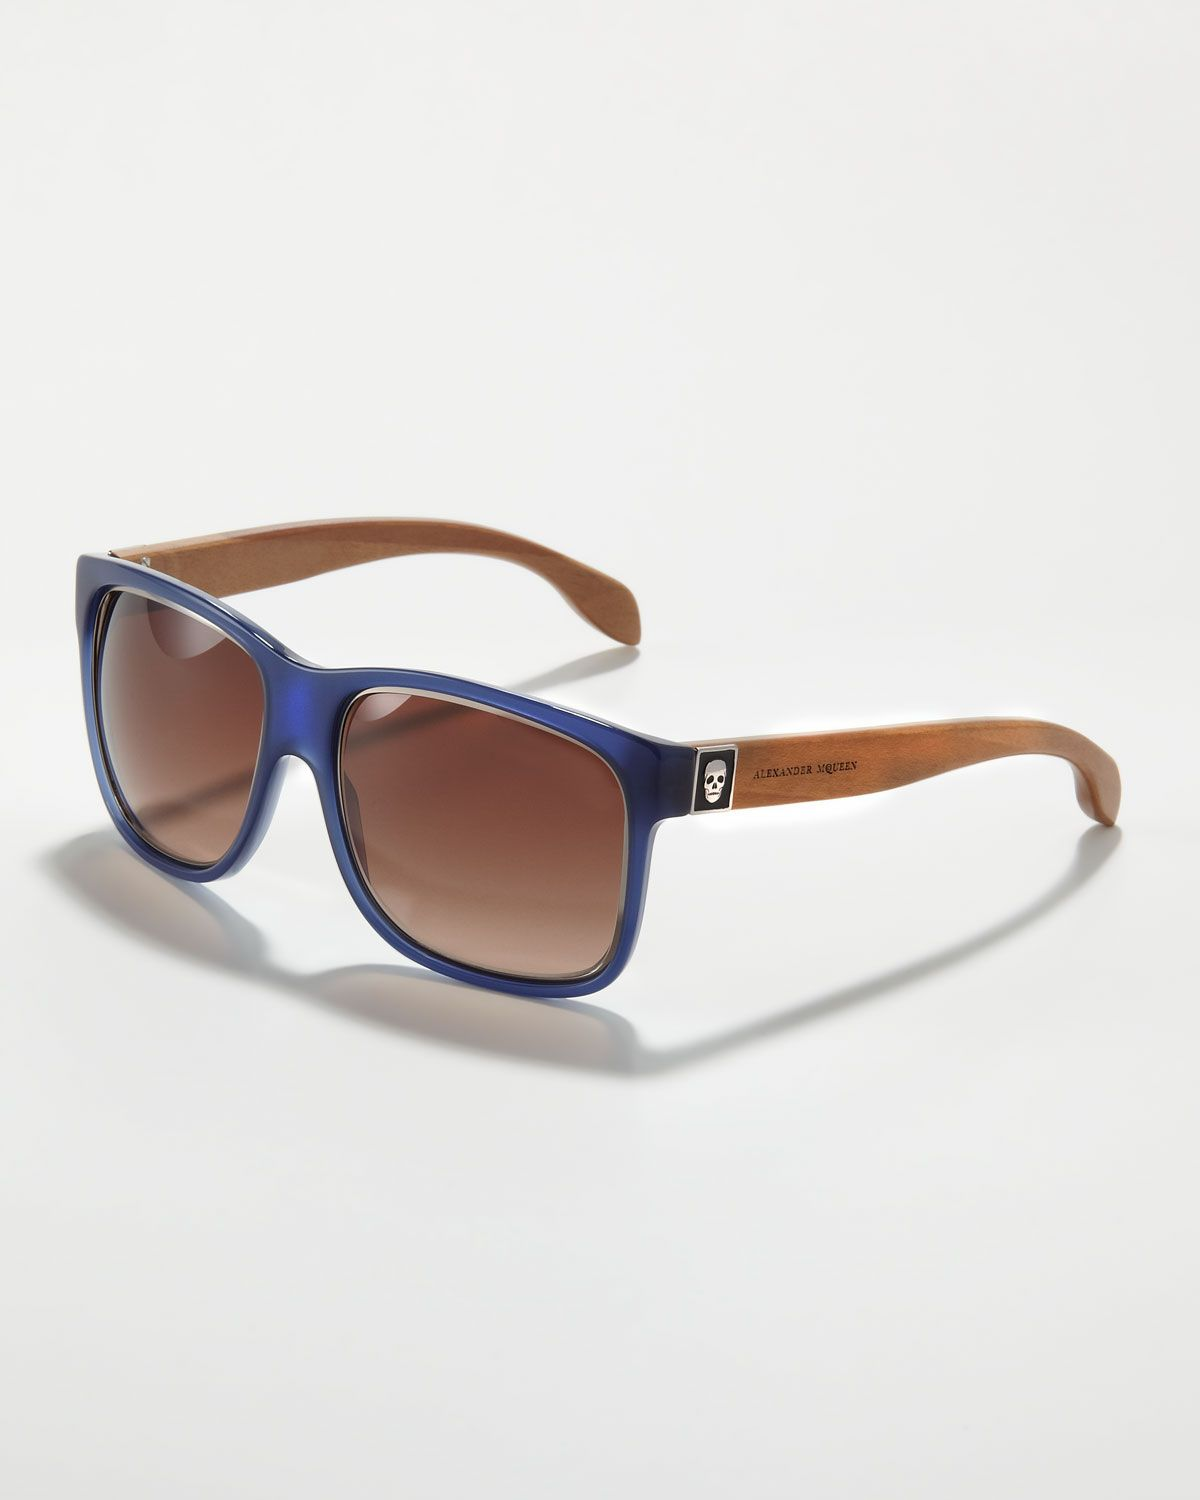 188ae8e89585  Love logo placement and engraving  Alexander McQueen Wooden-Arm Square  Sunglasses